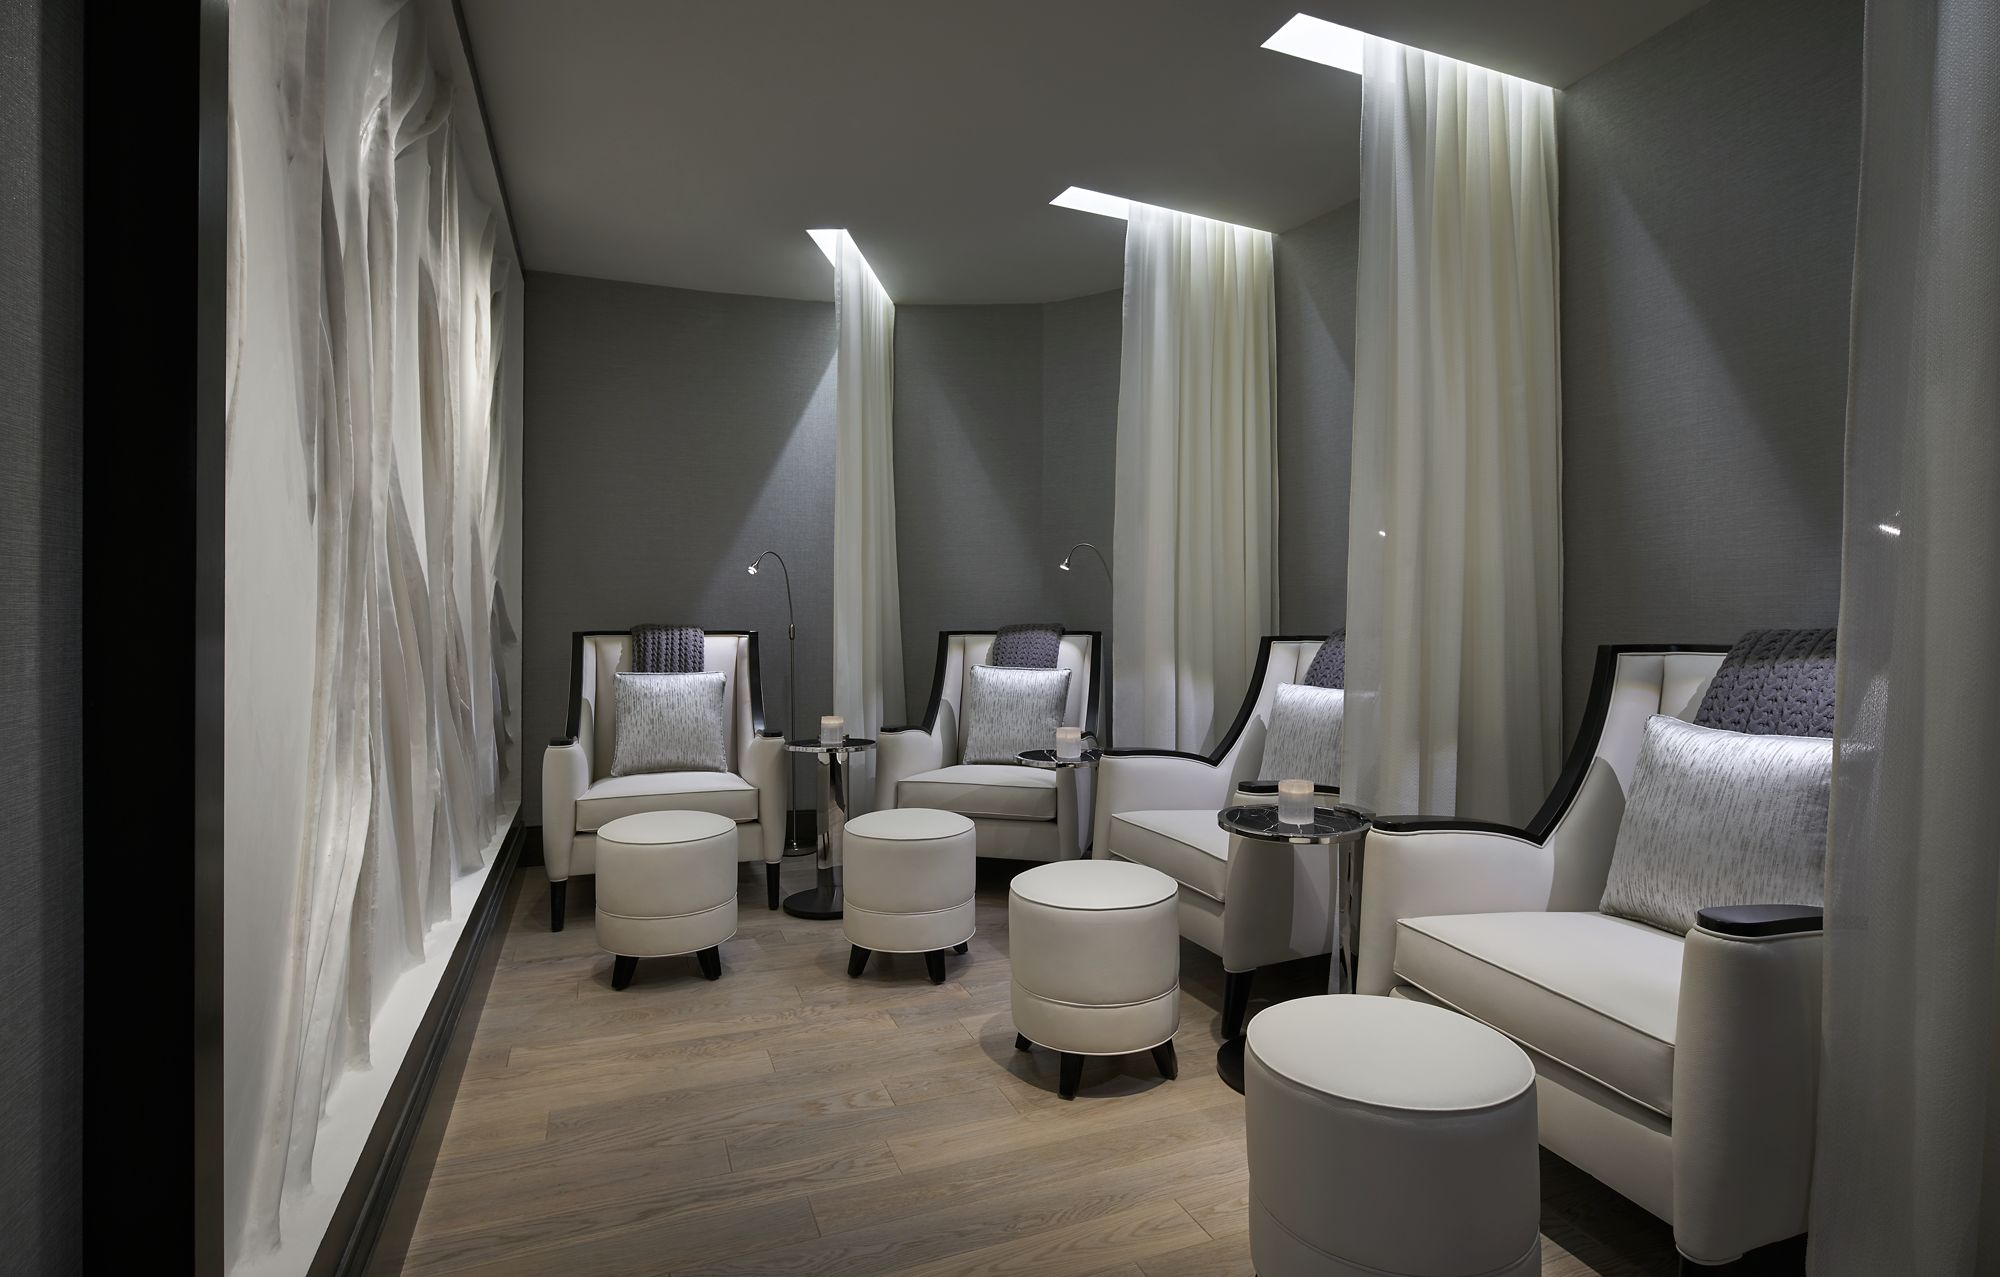 Dc Spa Hotel Spas In Washington Dc The Ritz Carlton